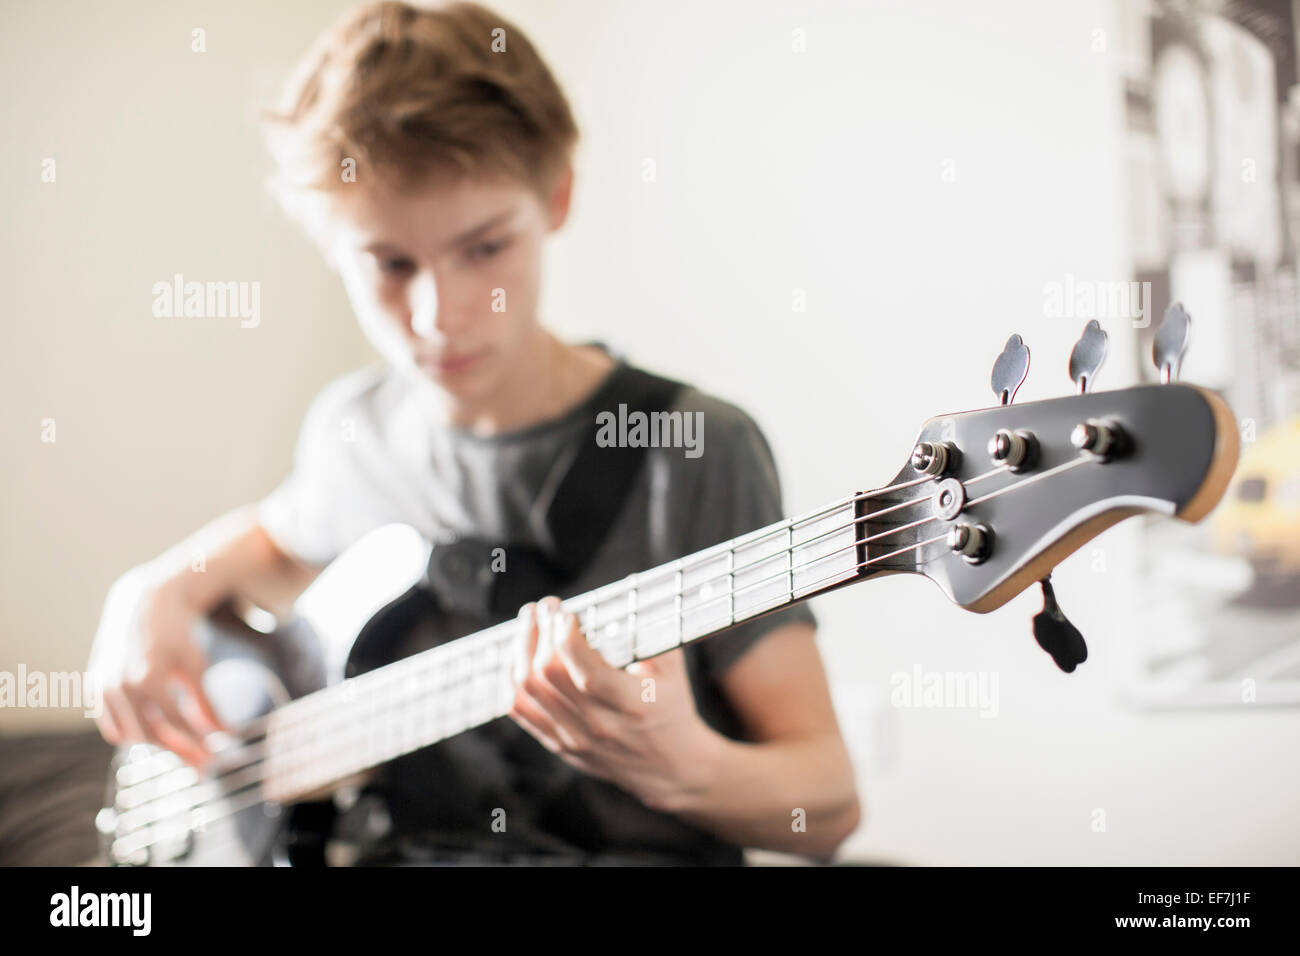 Teenage boy playing guitar Photo Stock